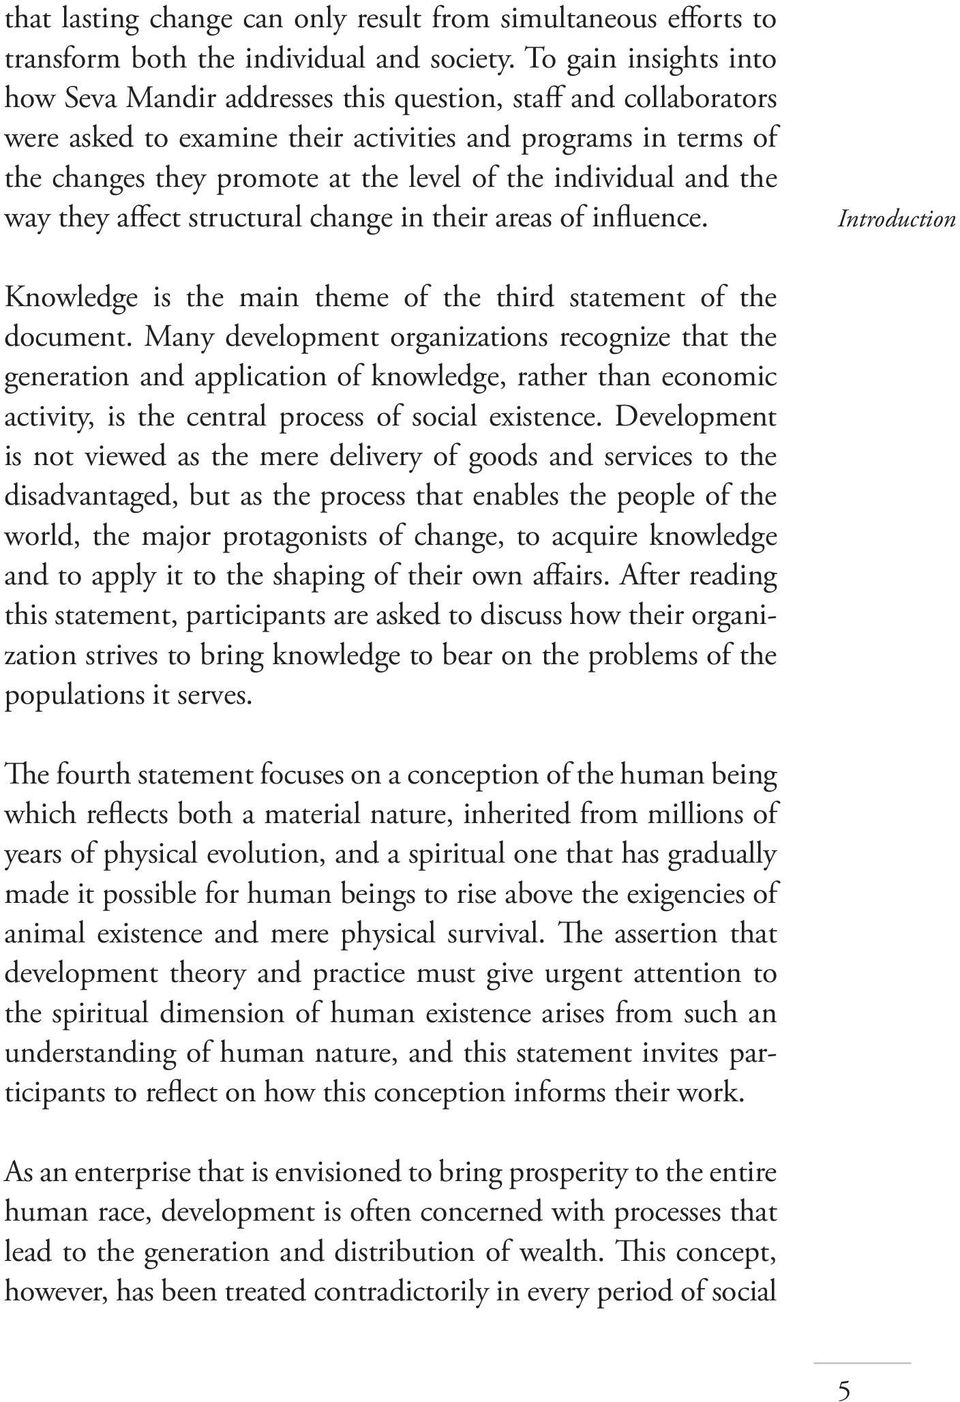 individual and the way they affect structural change in their areas of influence. Introduction Knowledge is the main theme of the third statement of the document.